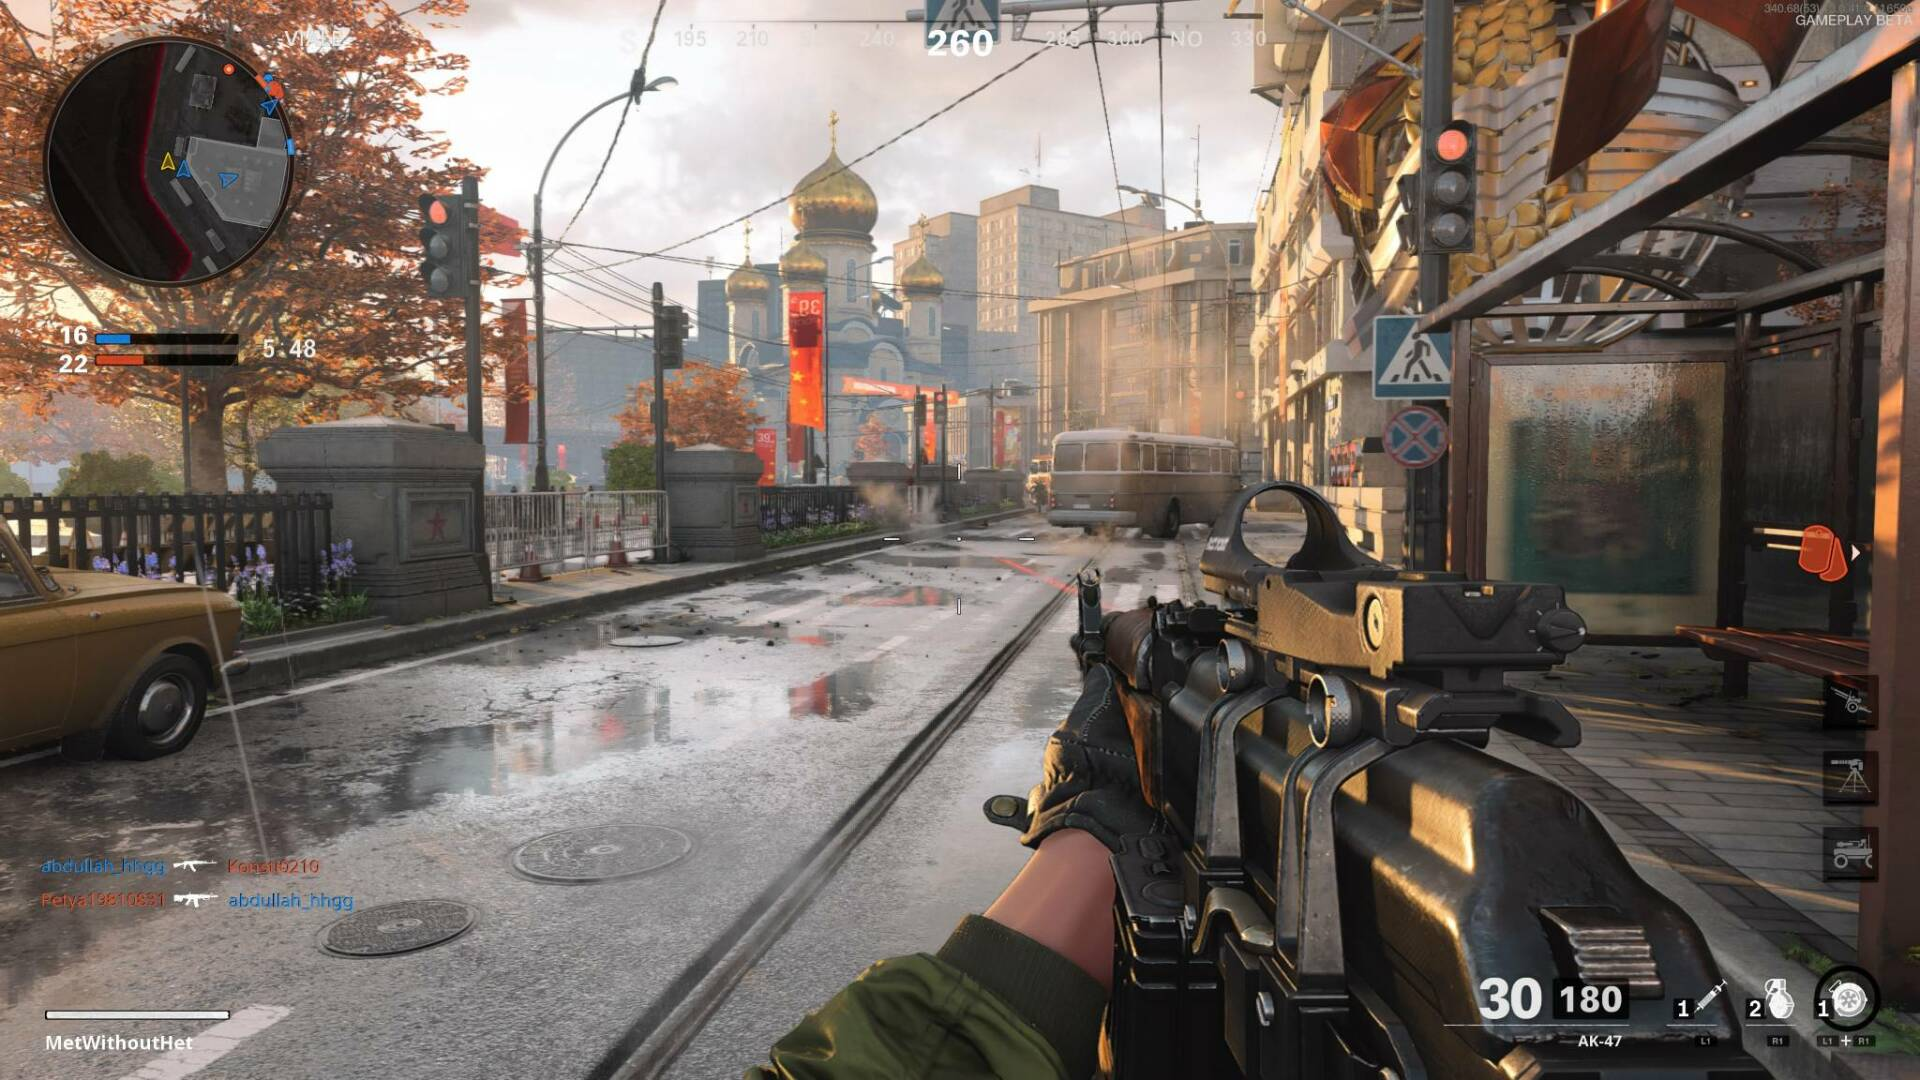 Call of Duty: Black Ops Cold War is no joke and will take up quite a bit of GB